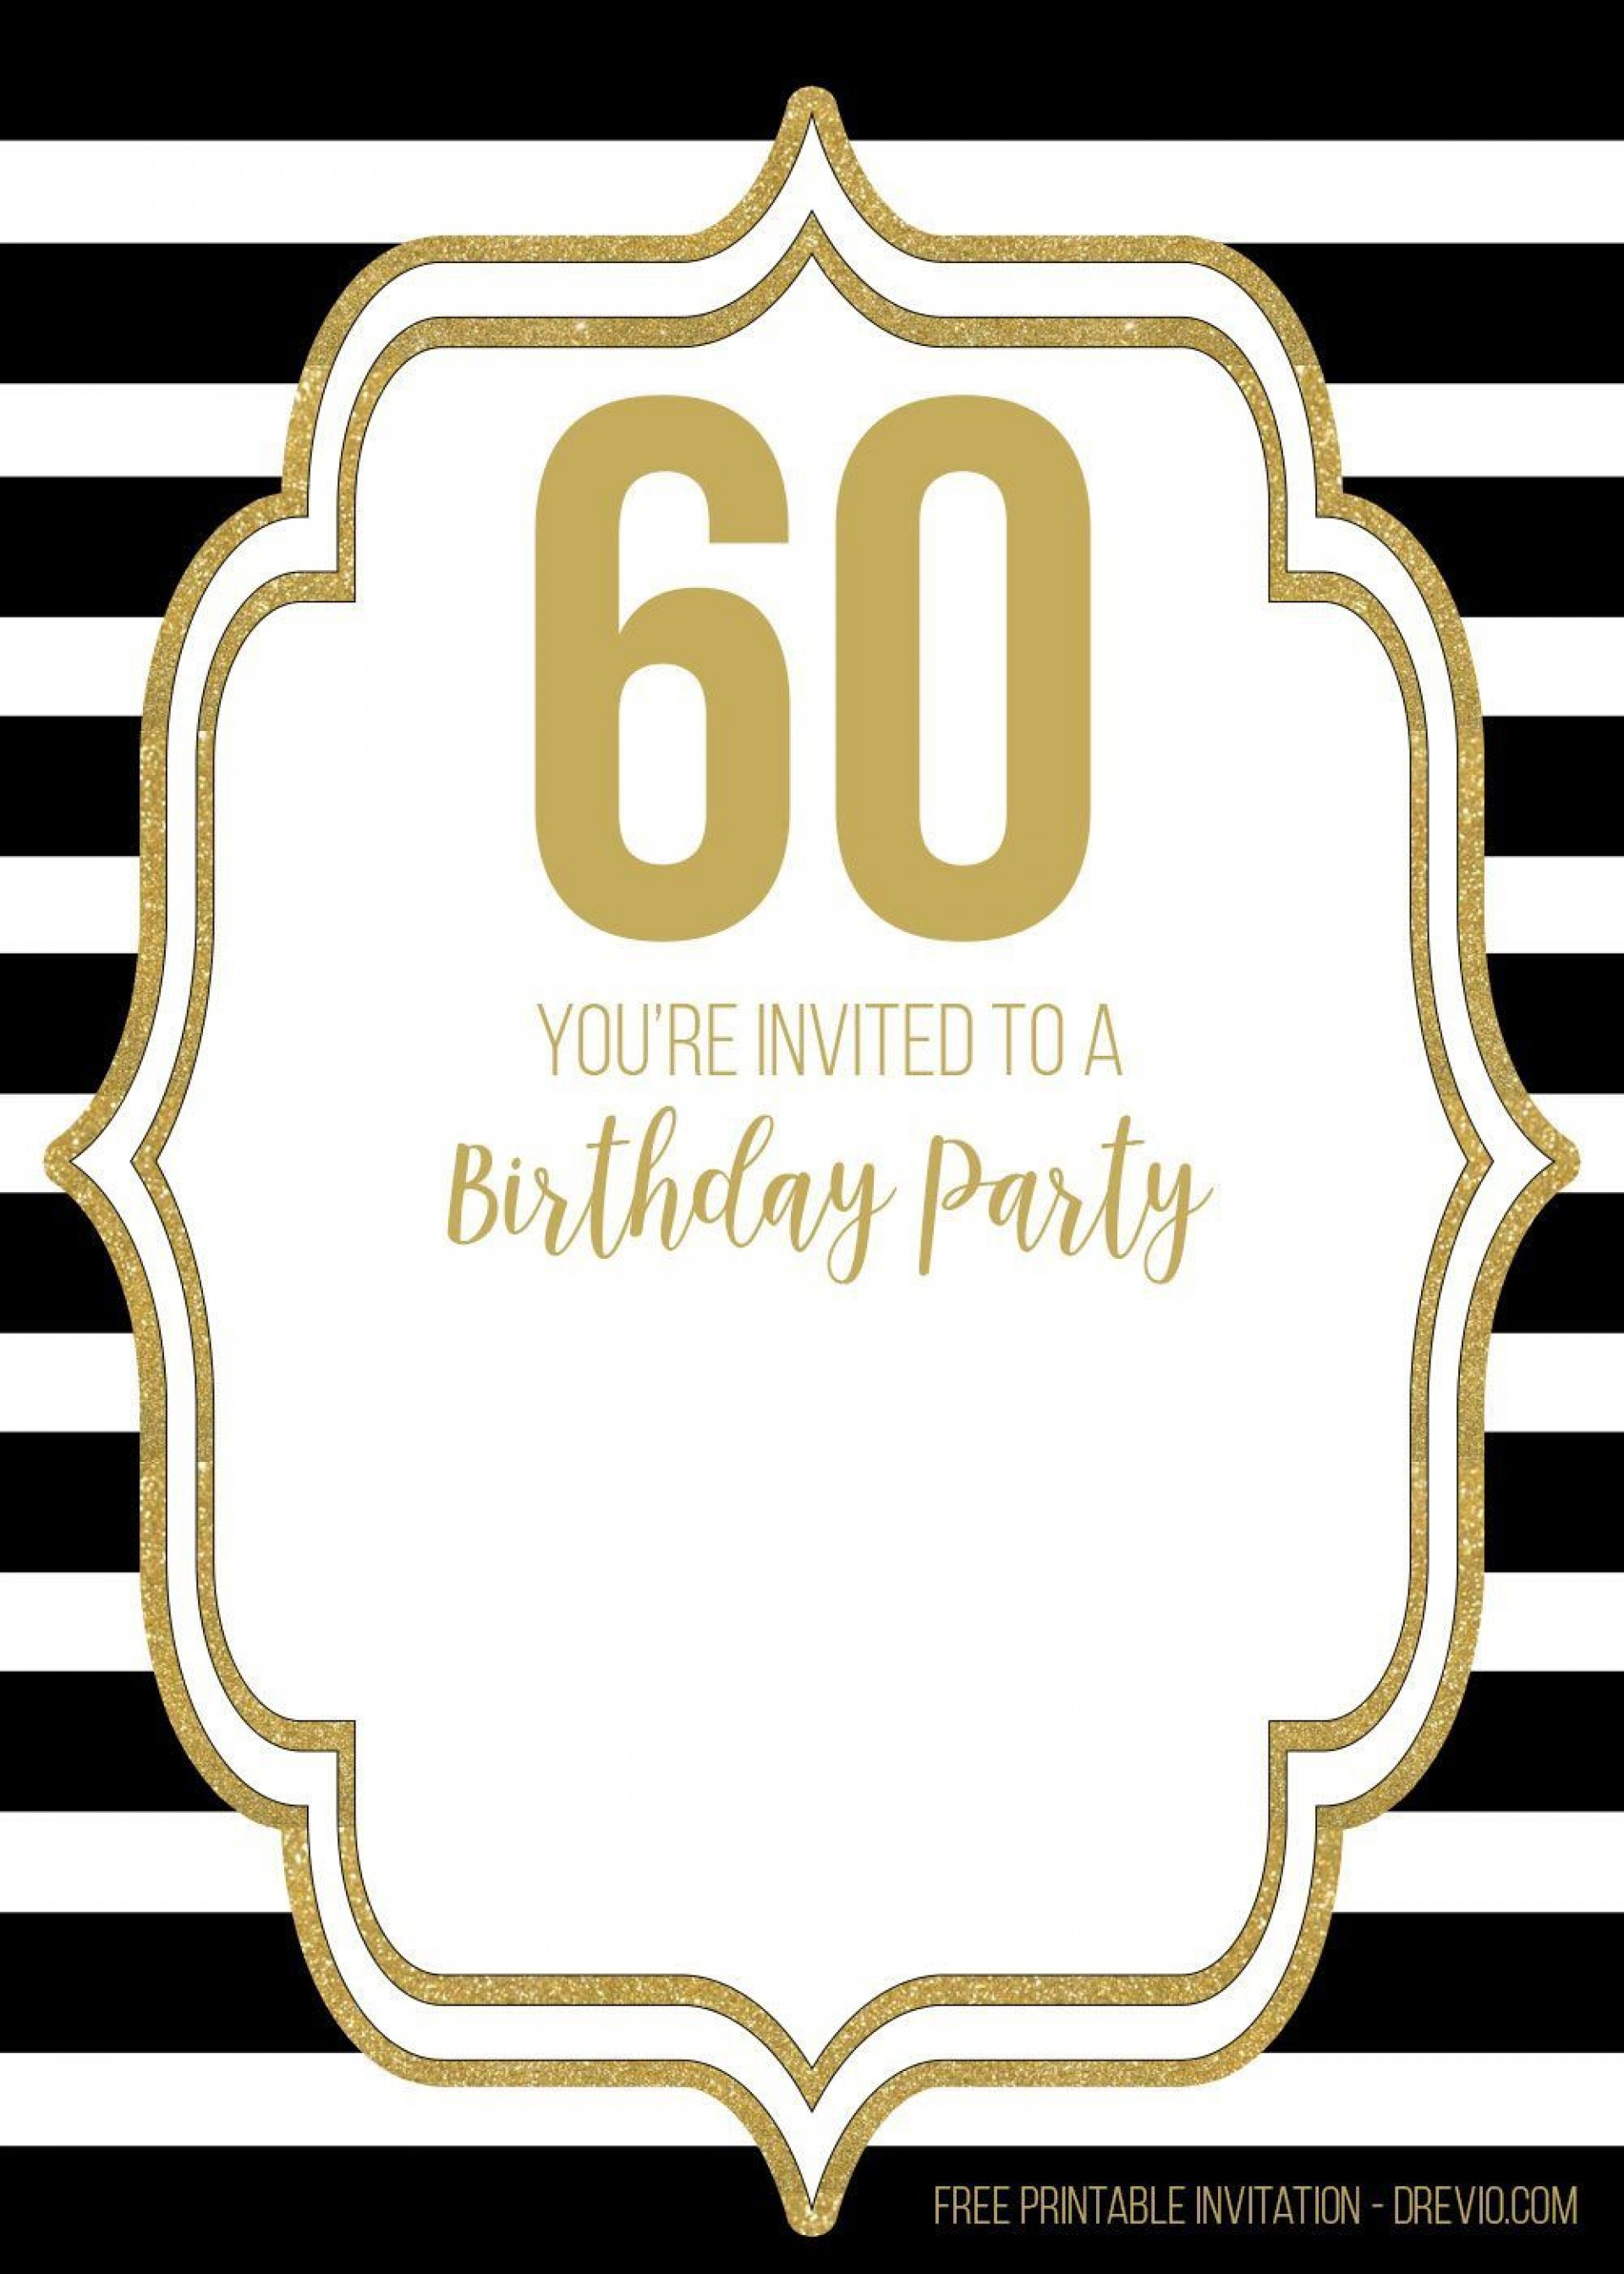 002 Fantastic Free 60th Birthday Invitation Template Highest Clarity  Templates Surprise Download For Word Party1920